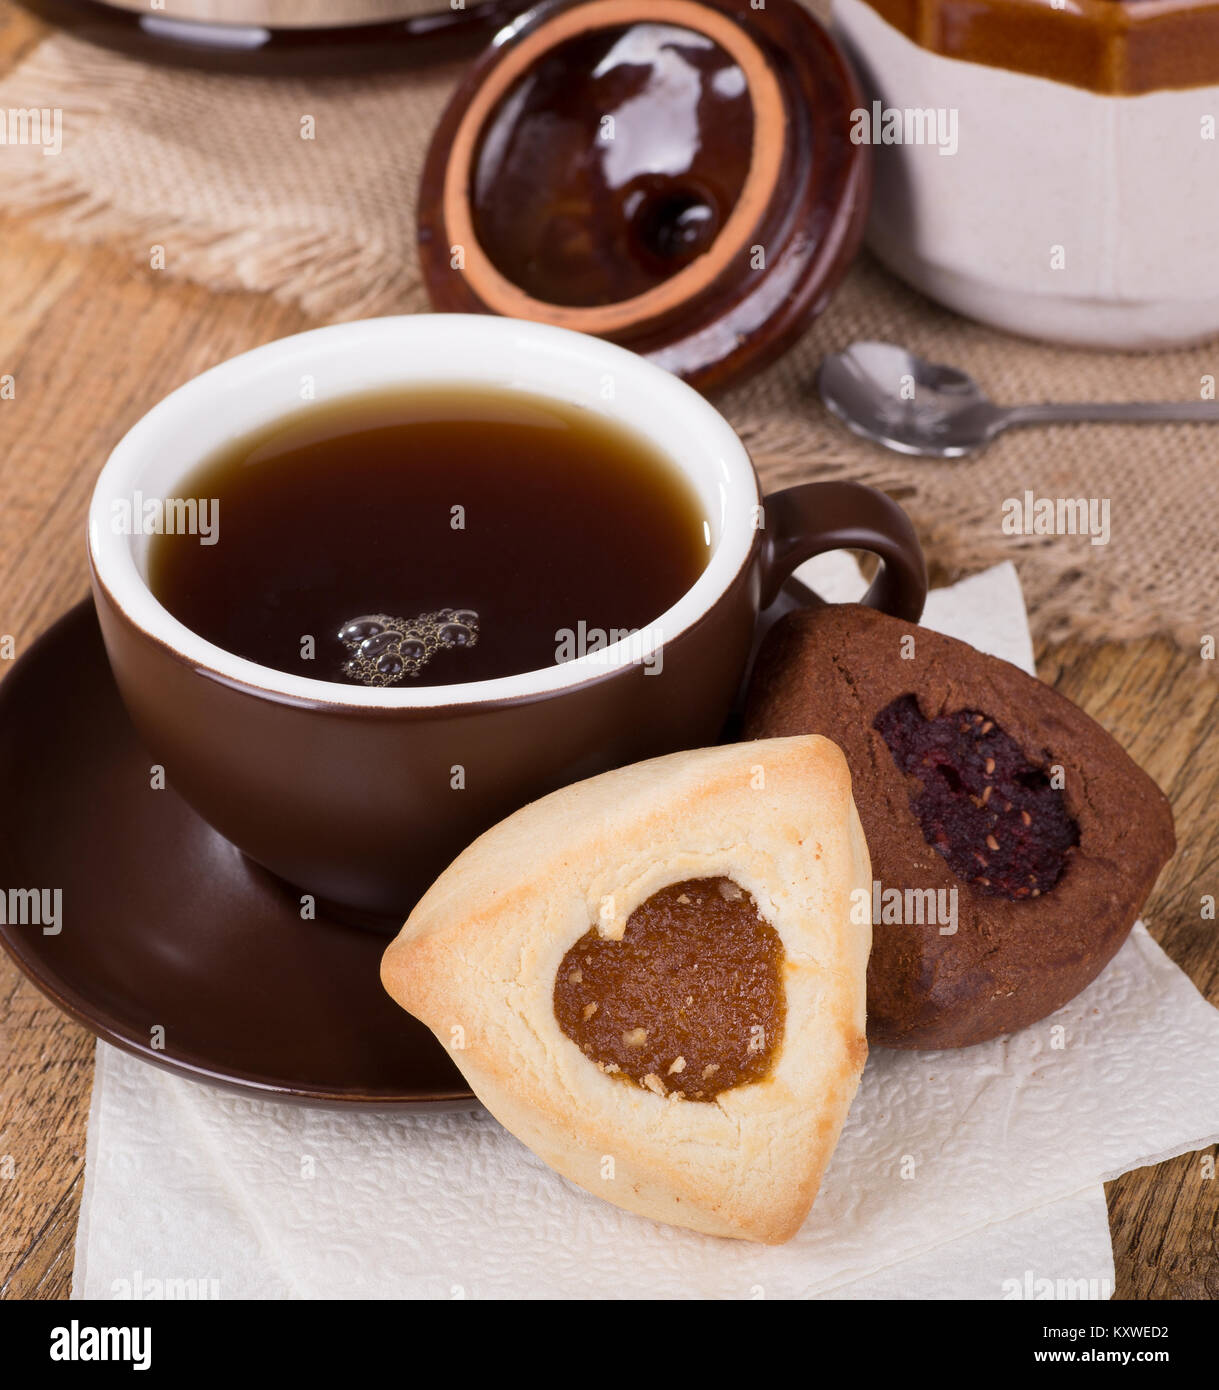 Apricot and raspberry filled hamantash cookies and cup of coffee - Stock Image